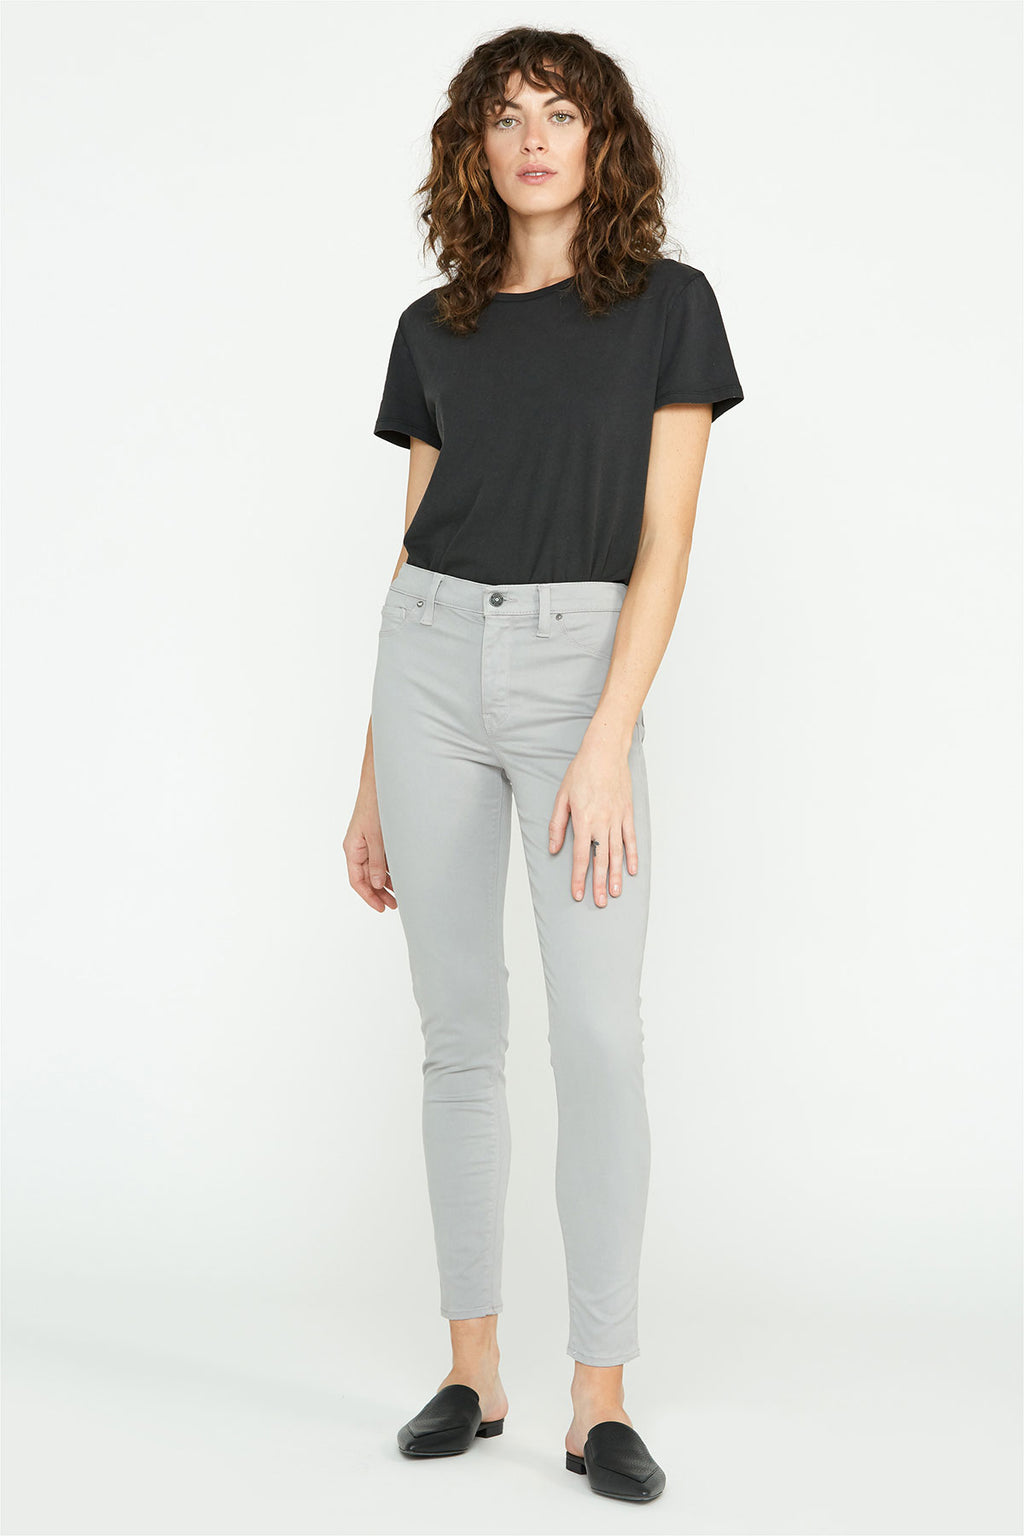 Barbara High-Rise Super Skinny Ankle Pant - hudsonjeans